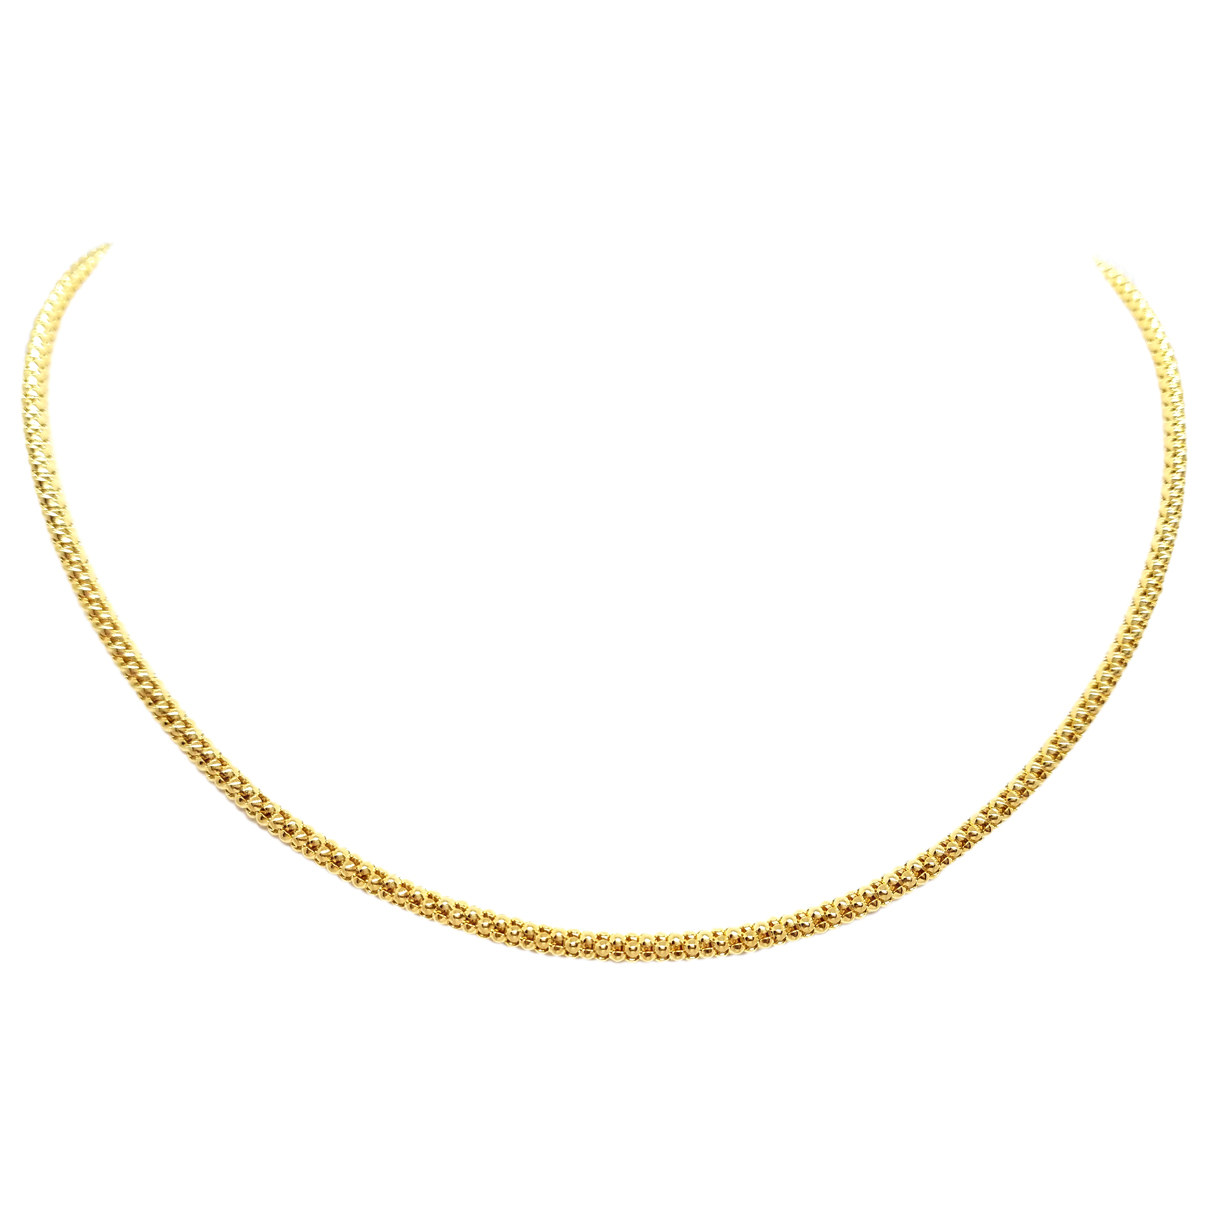 Autre Marque N Gold Yellow gold necklace for Women N